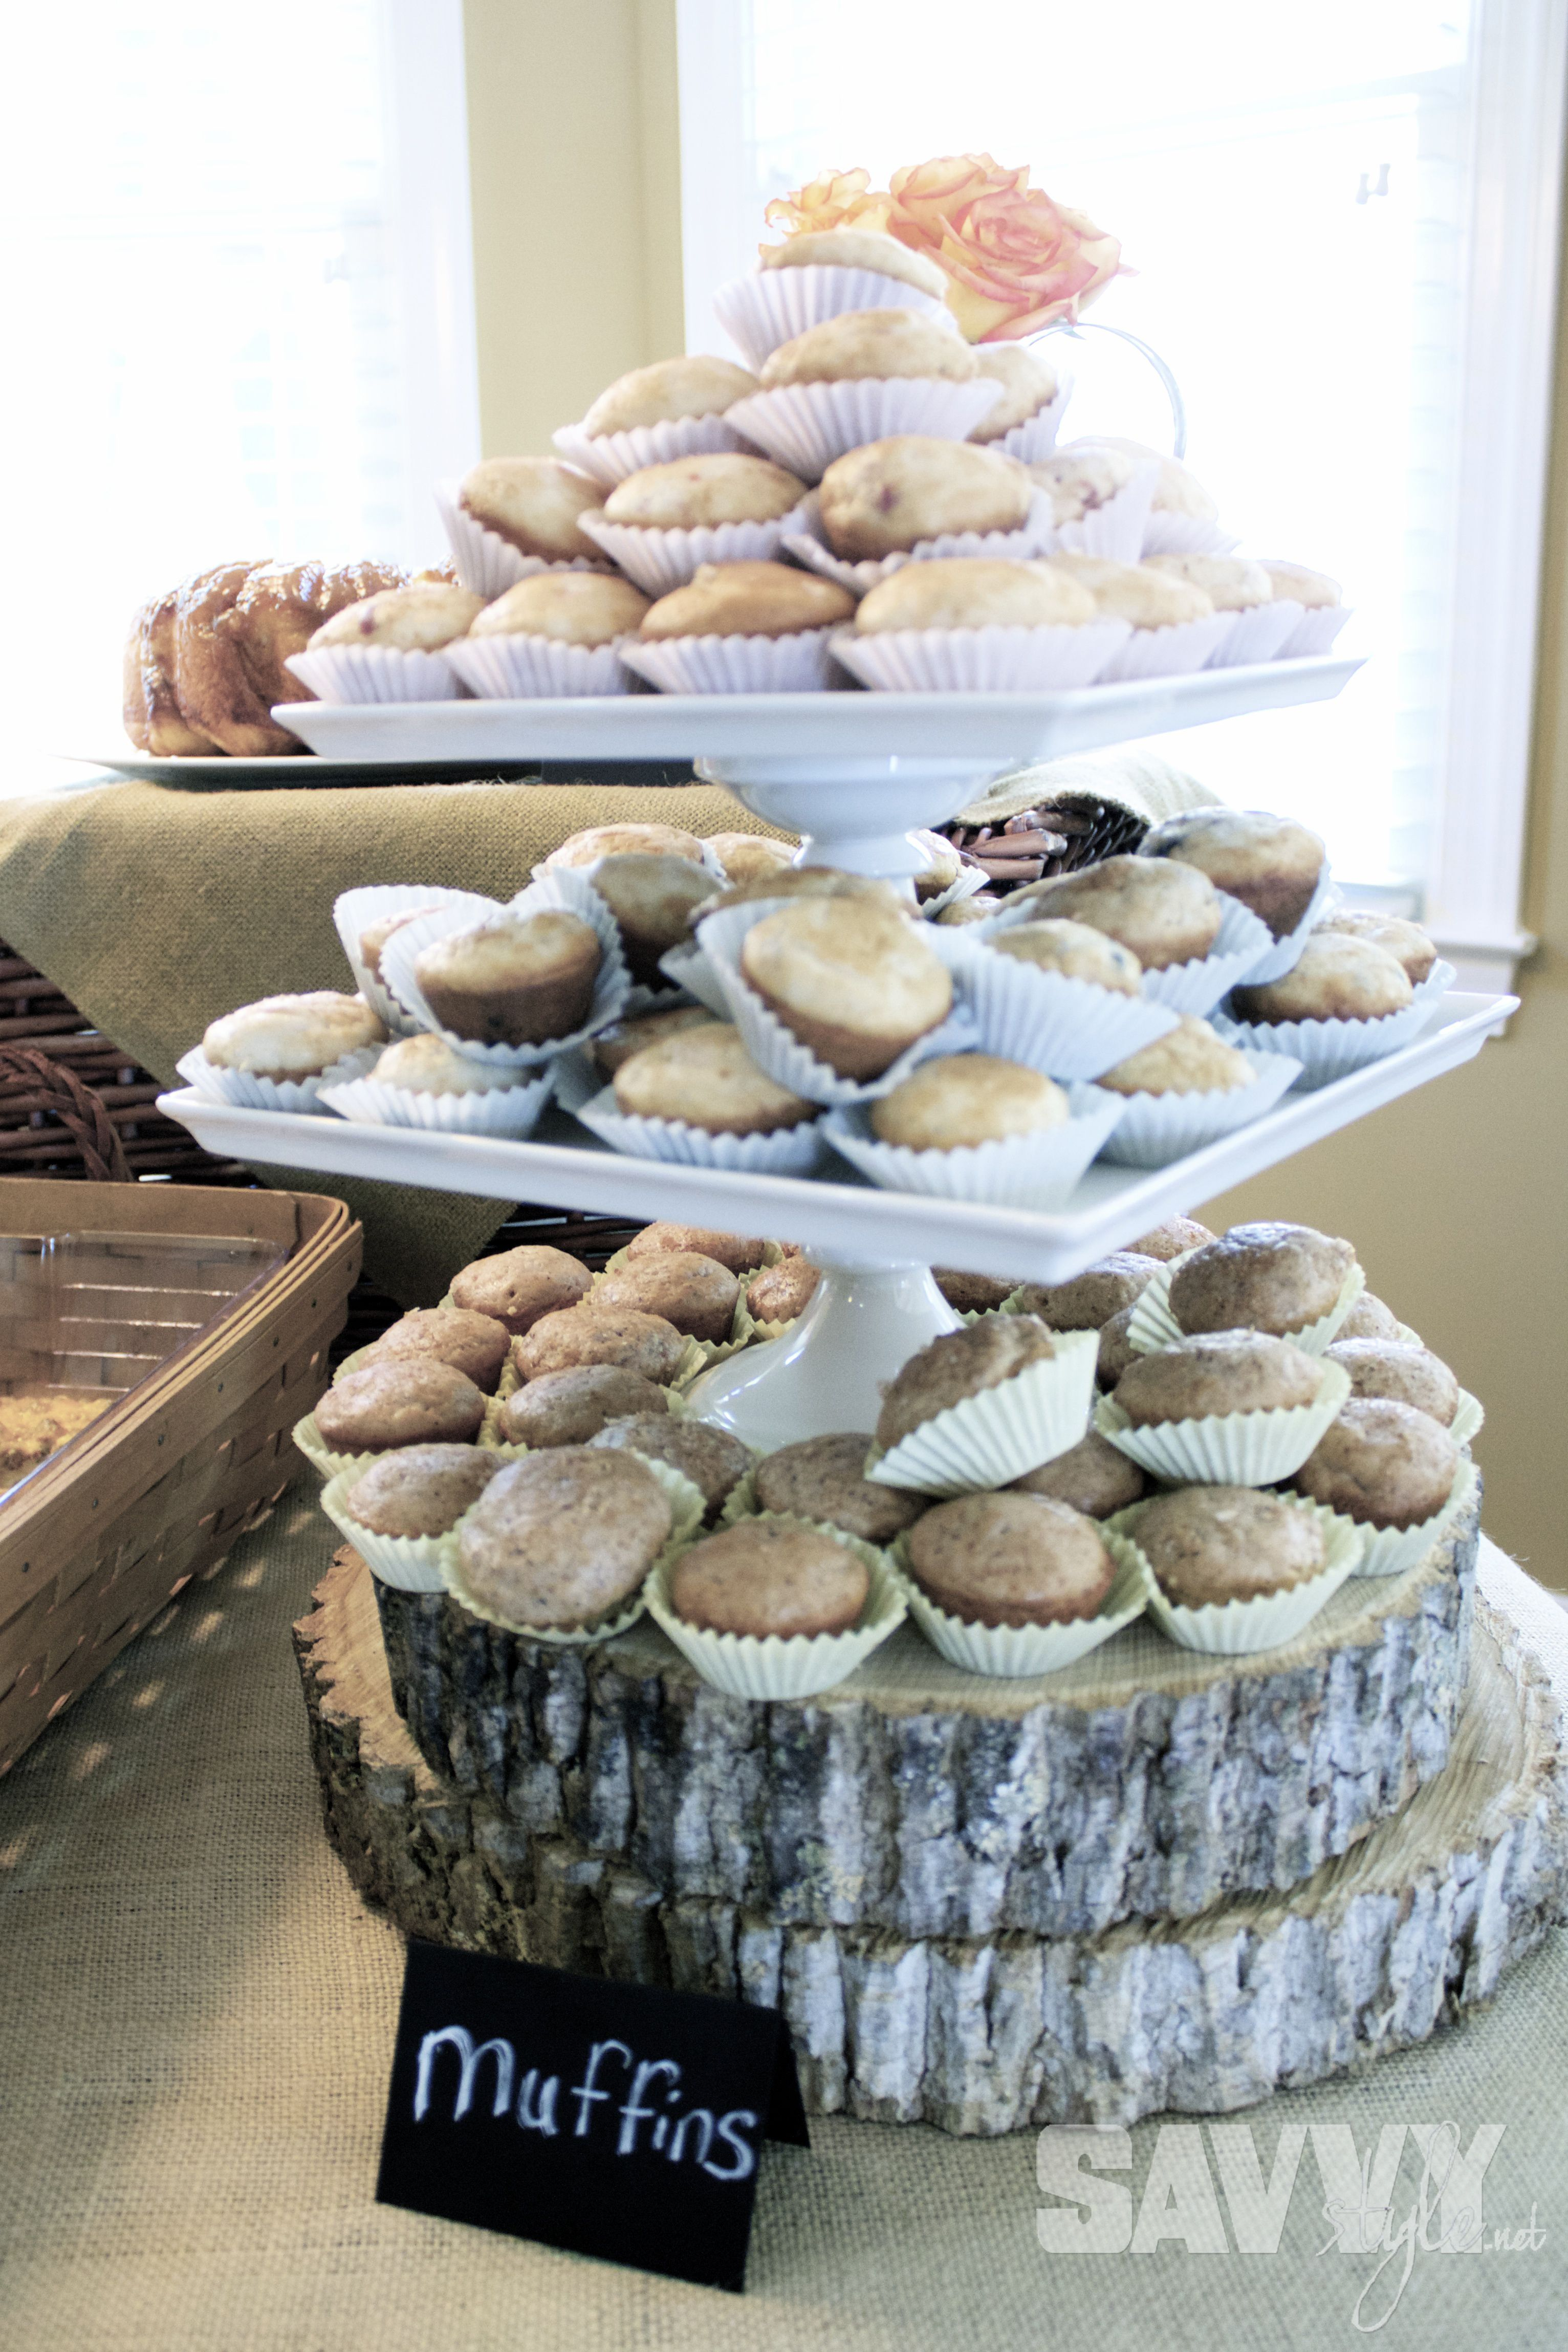 Muffin Tower on wood slabs bridal-shower-muffins http://savvystyle.net/2013/04/21/rustic-bridal-shower-brunch/